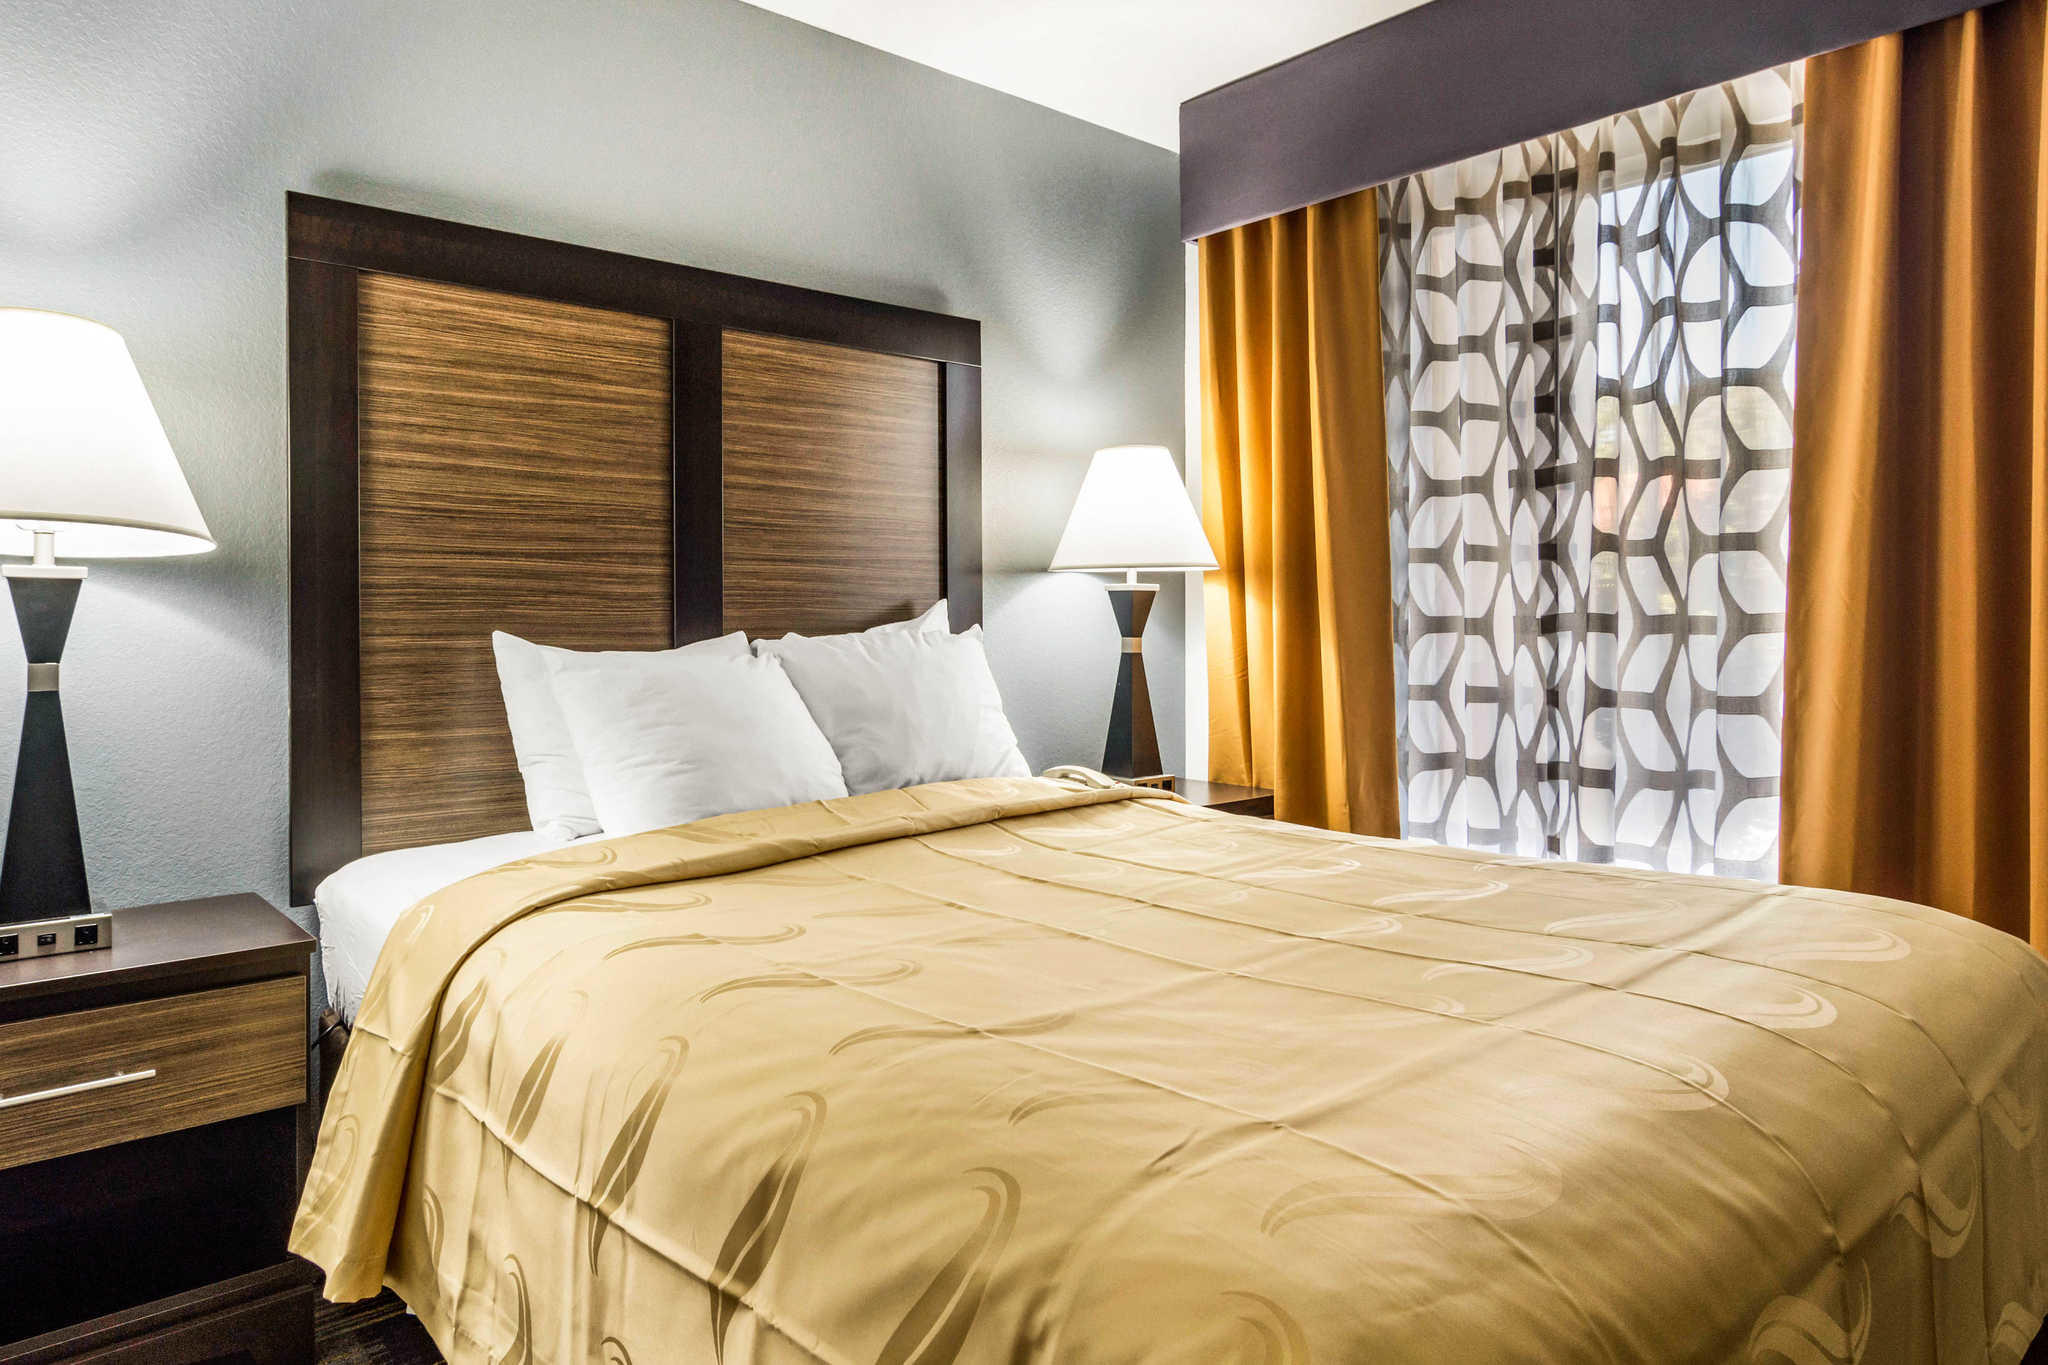 Book the Quality Inn Marietta - Located in the heart of Marietta, this hotel is 1 mi ( km) from Atlanta United Training Center and within 3 mi (5 km) of Life University and Wellstar Windy Hill Hospital/5().